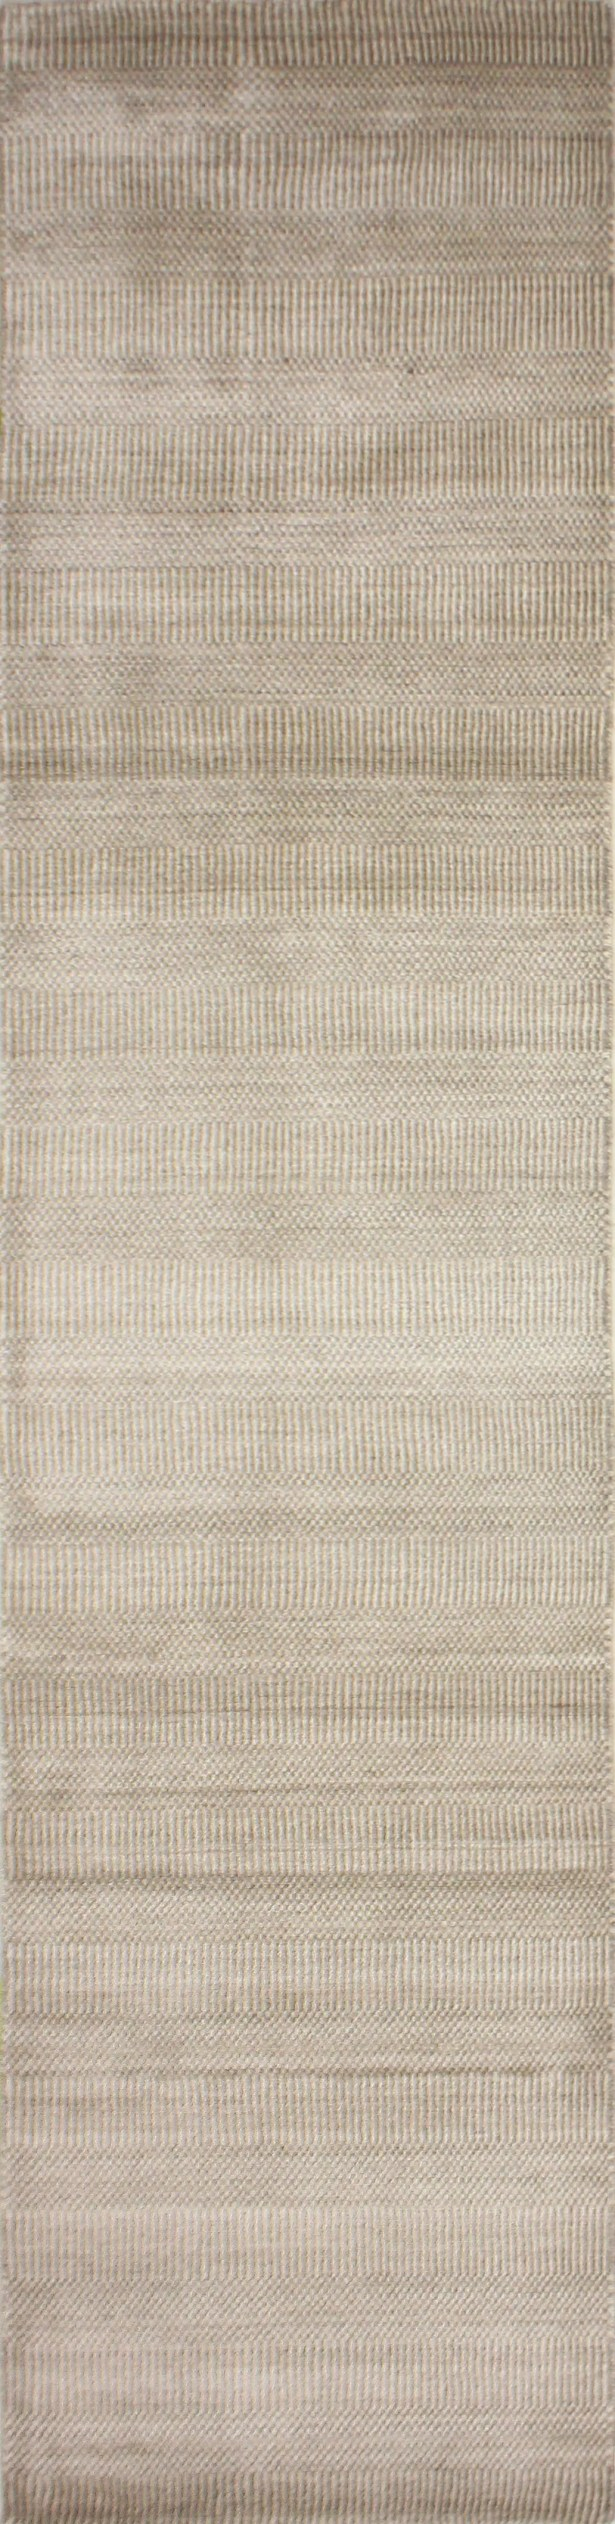 One-of-a-Kind Meidell Hand-Woven Wool Sand Area Rug Rug Size: Runner 2'6